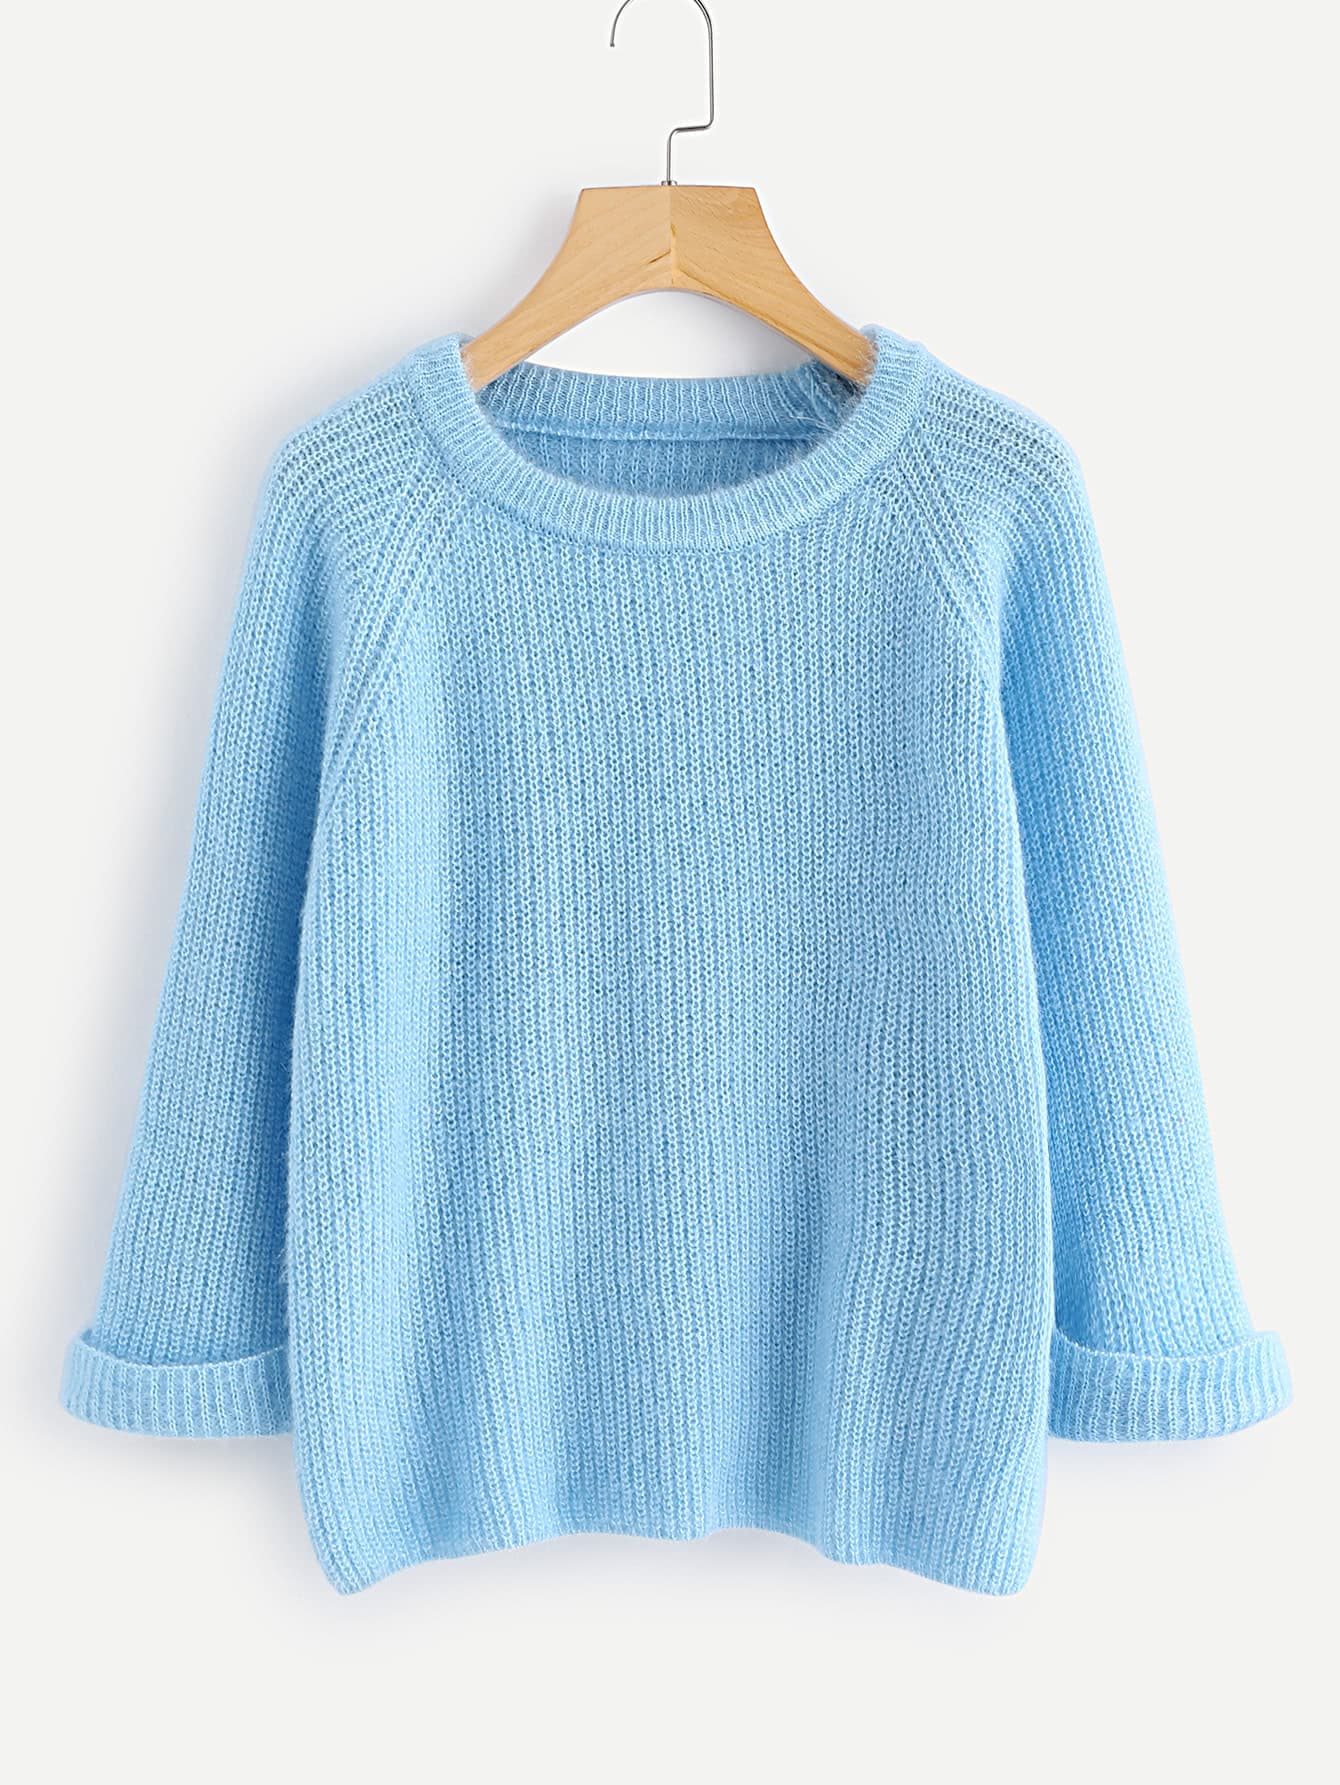 Cuffed Raglan Sleeve Sweater thumbnail